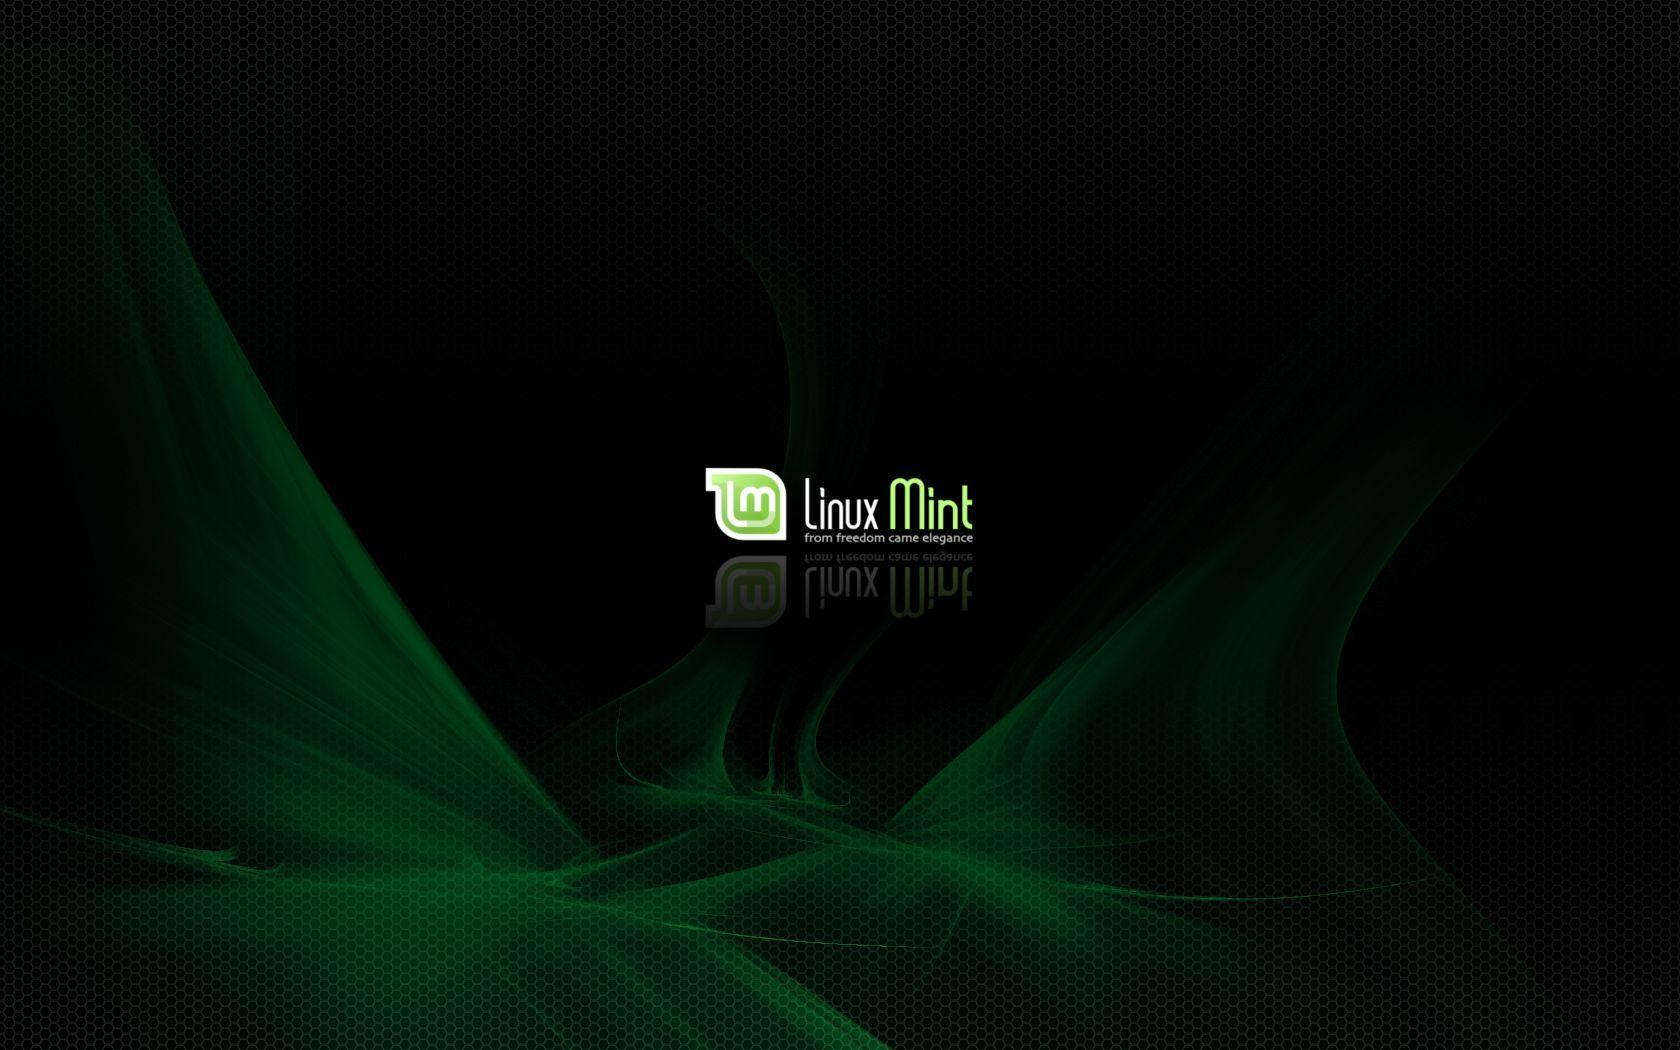 Cool Linux Mint Wallpaper | Linux Wallpaper #